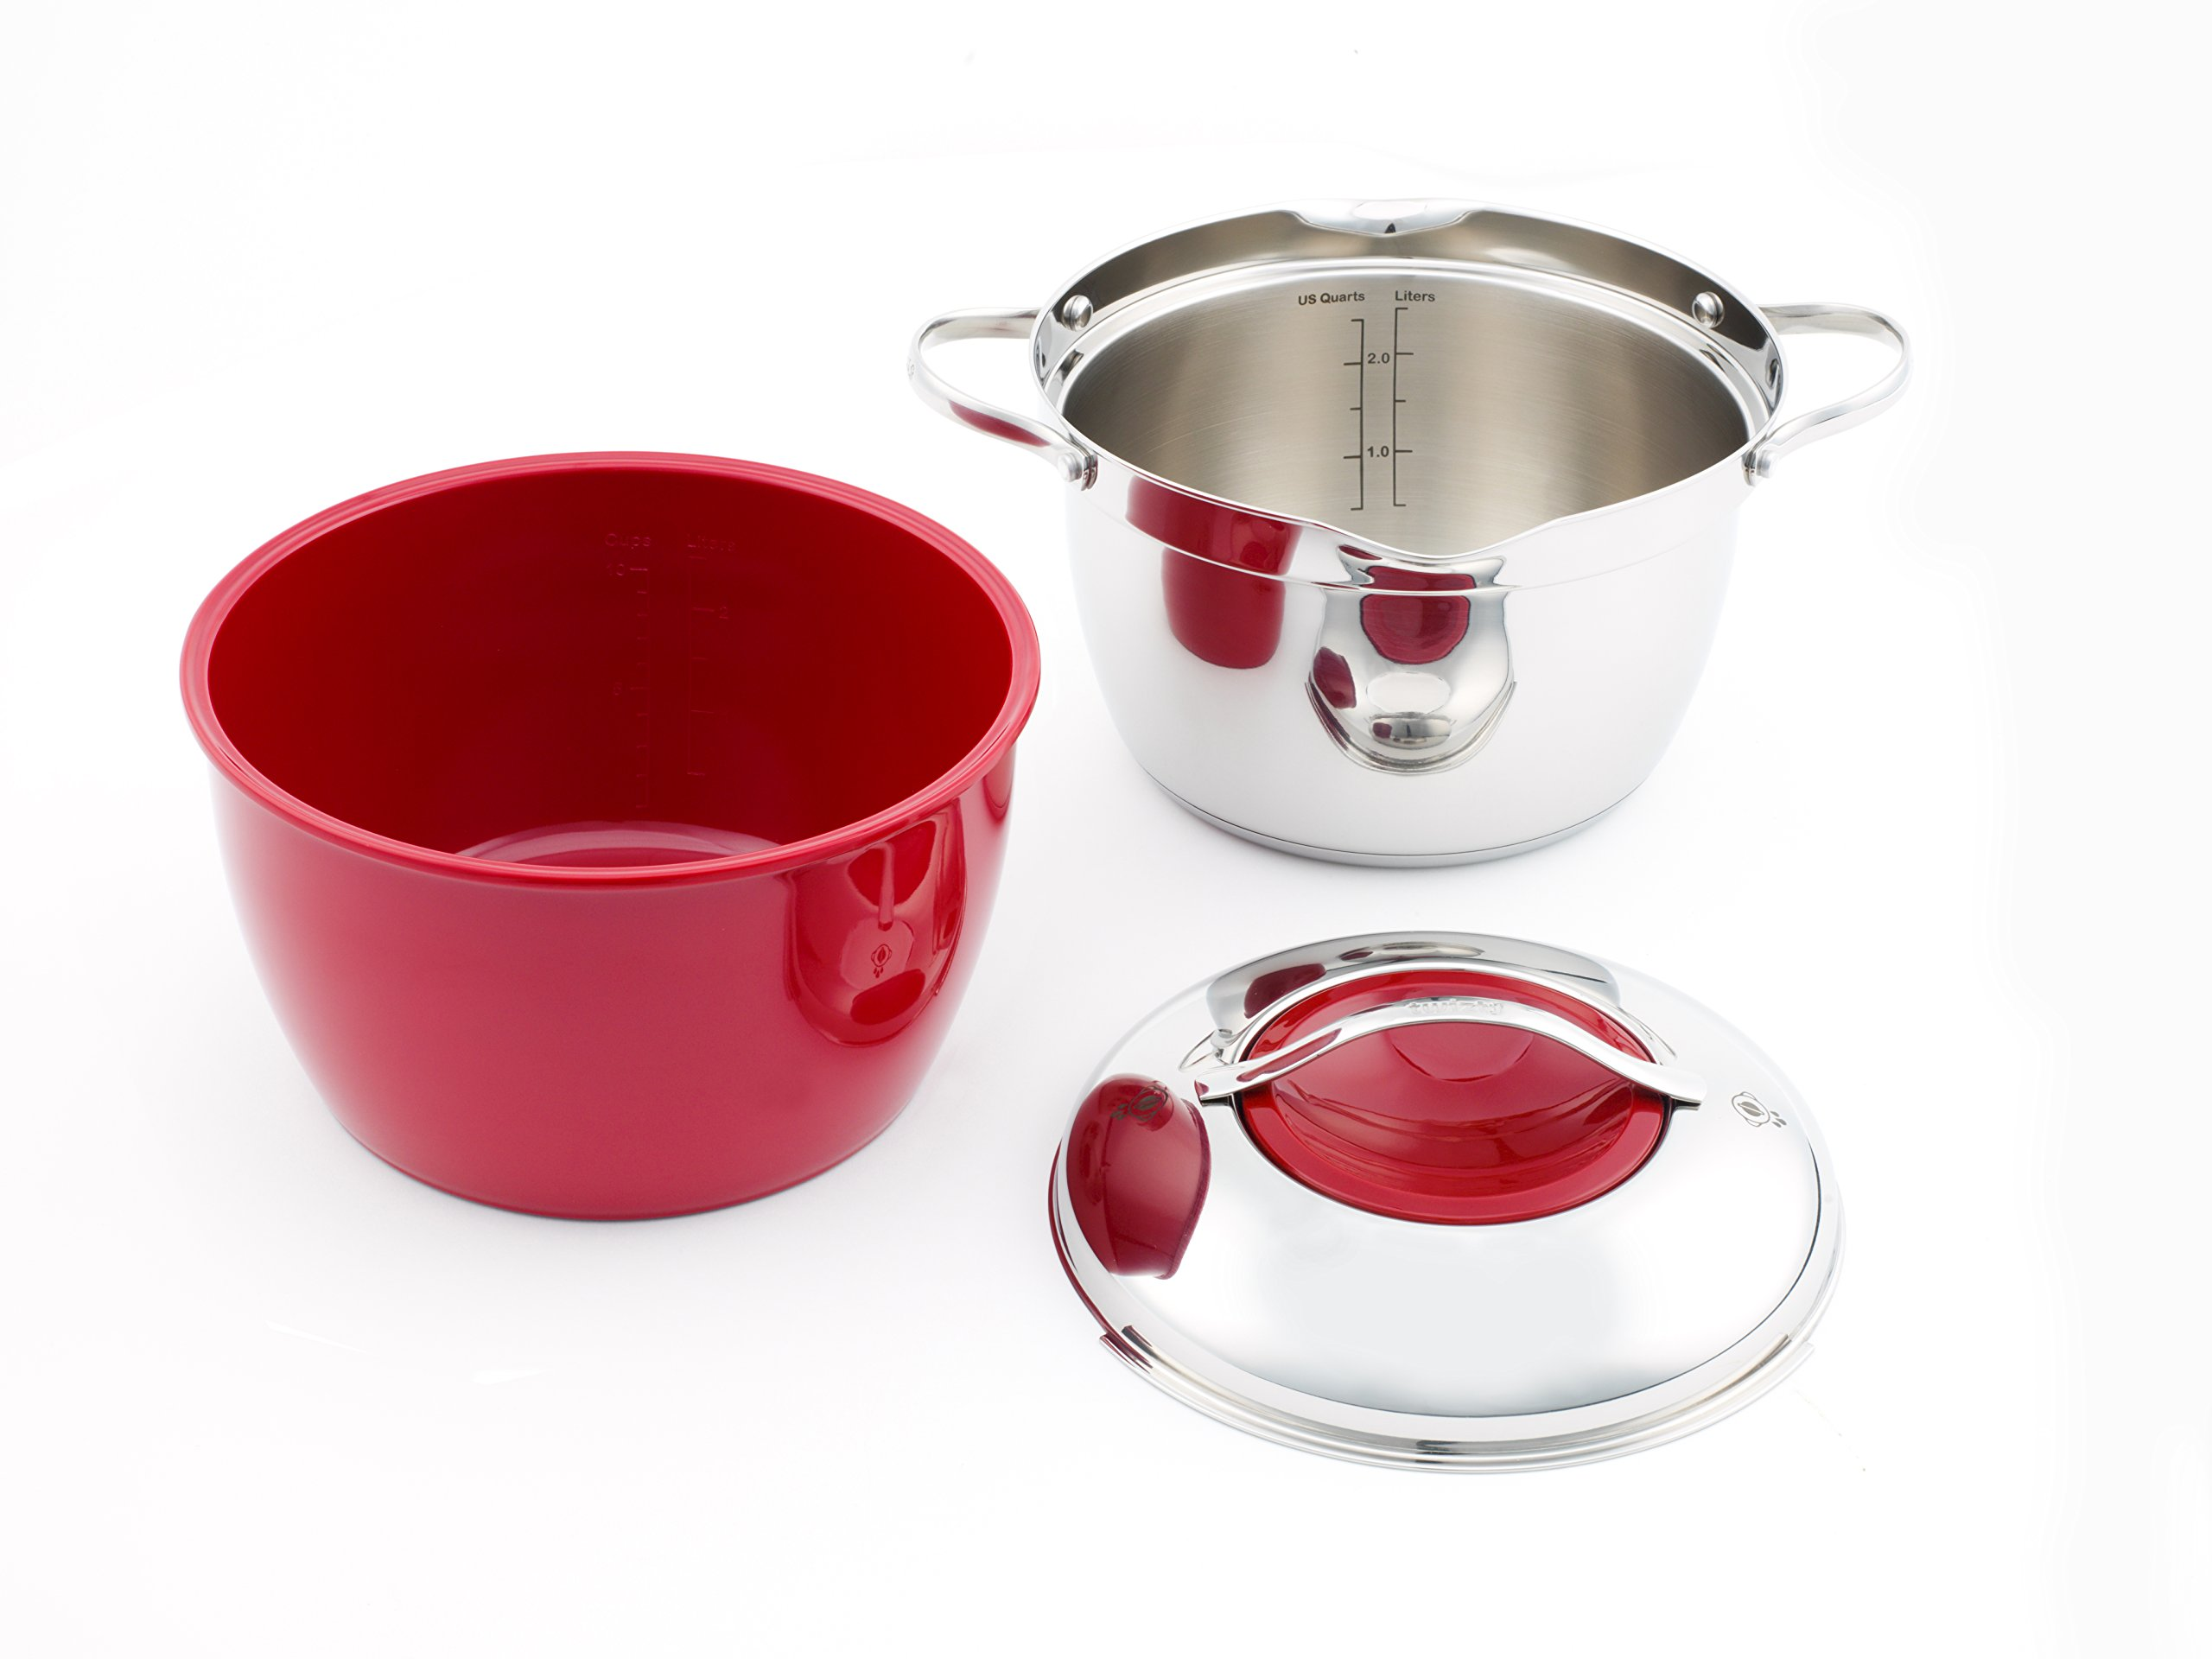 Twiztt by Joan Lunden CW0004776 3 Quart Stainless Steel with Red Bowl Covered Casserole